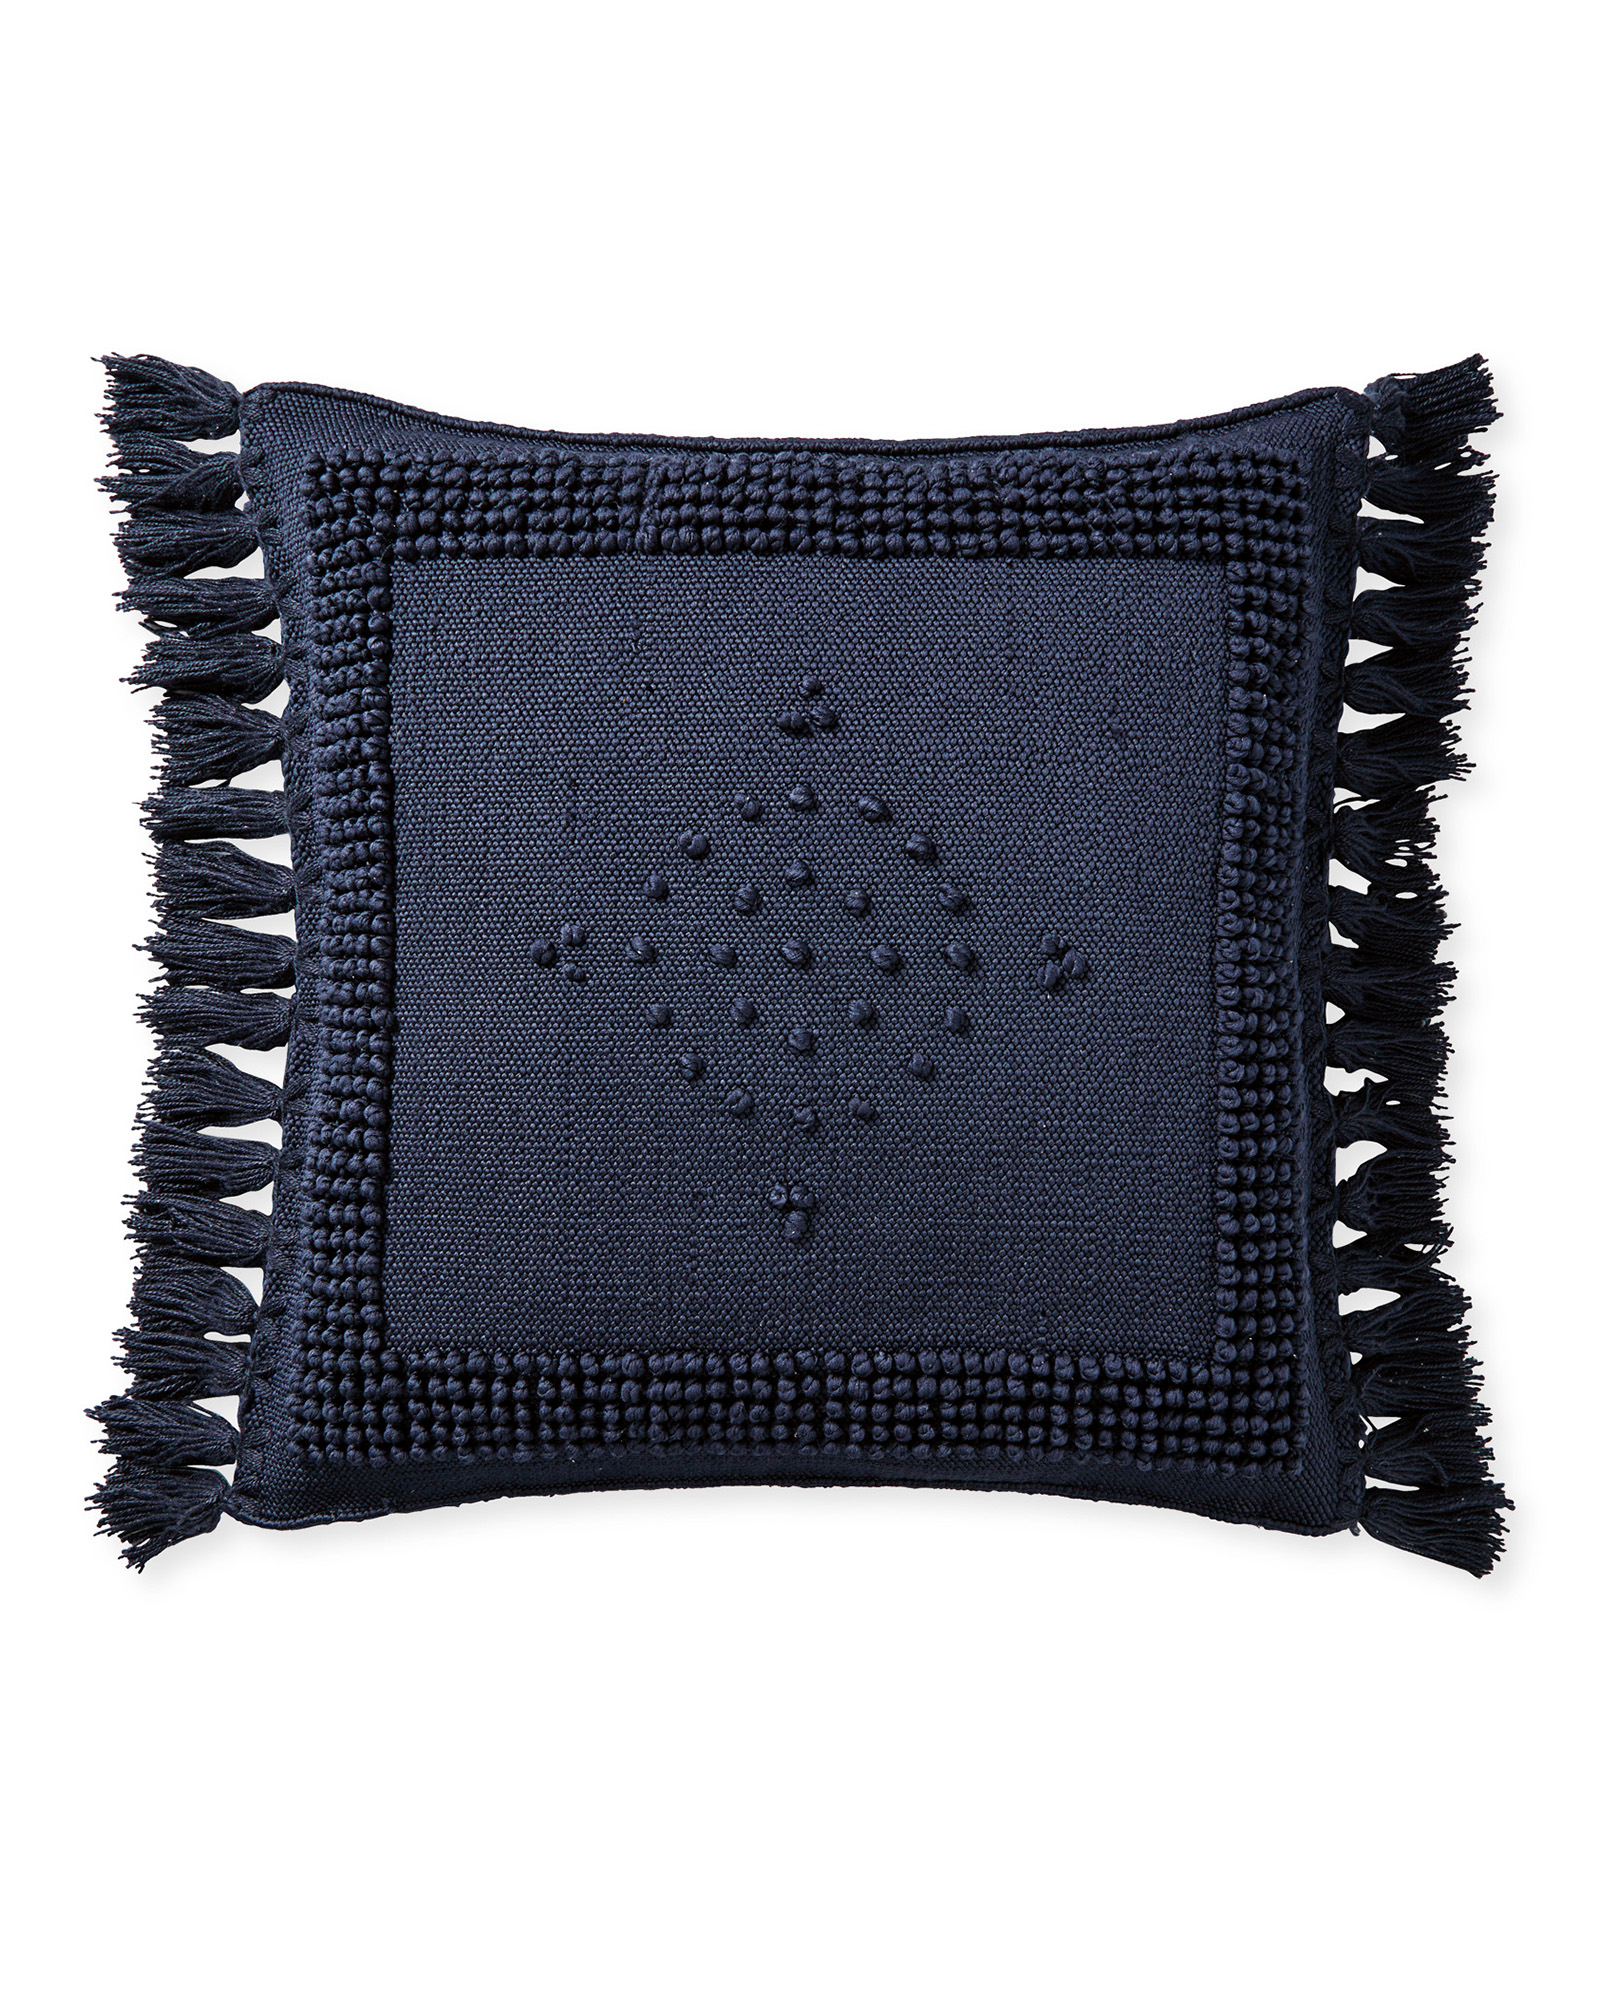 Dec_Pillow_Montecito_24x24_Navy_MV_Crop_SH.jpg